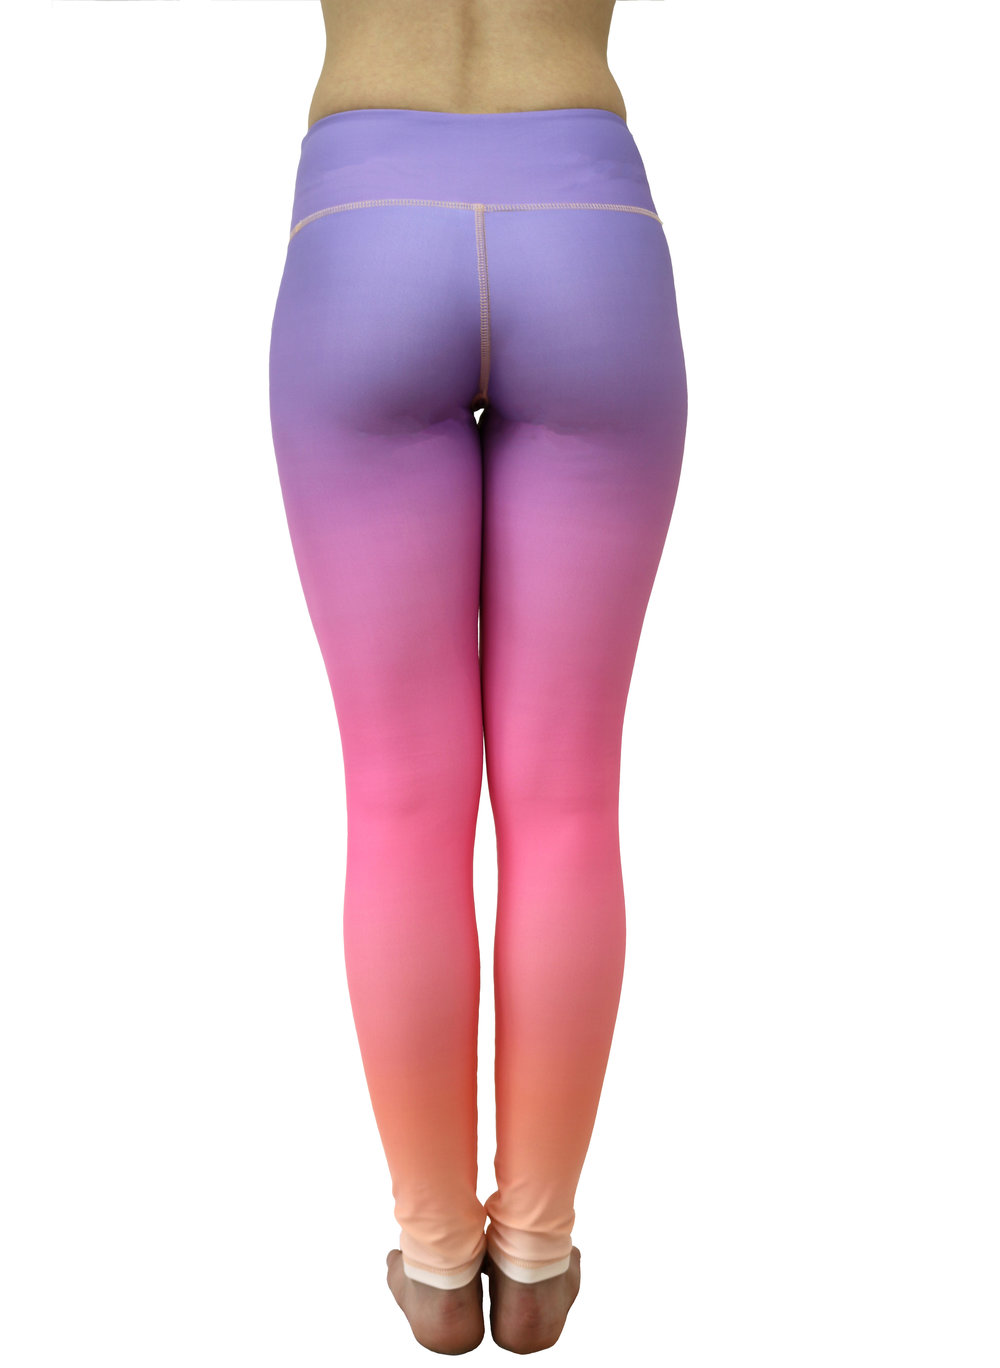 GP SUNSETS OCEAN BREEZE LEGGINGS BACK.jpg